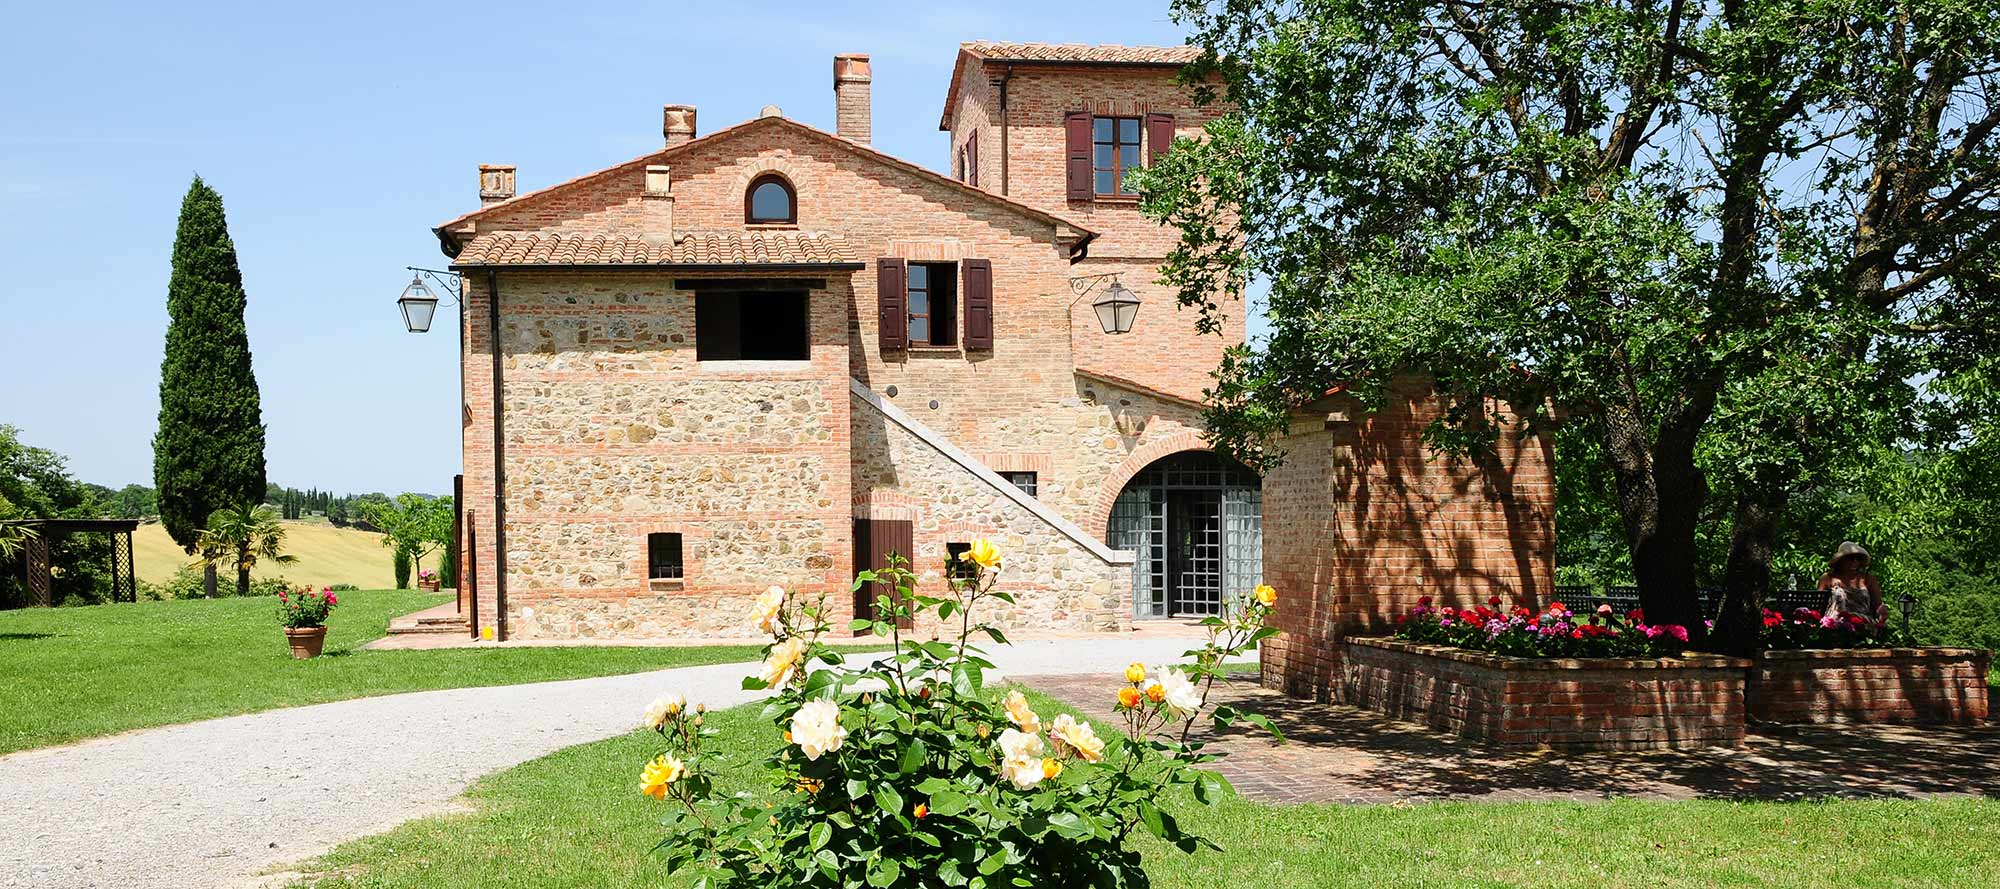 CITENO Villa is a large freestanding Tuscan